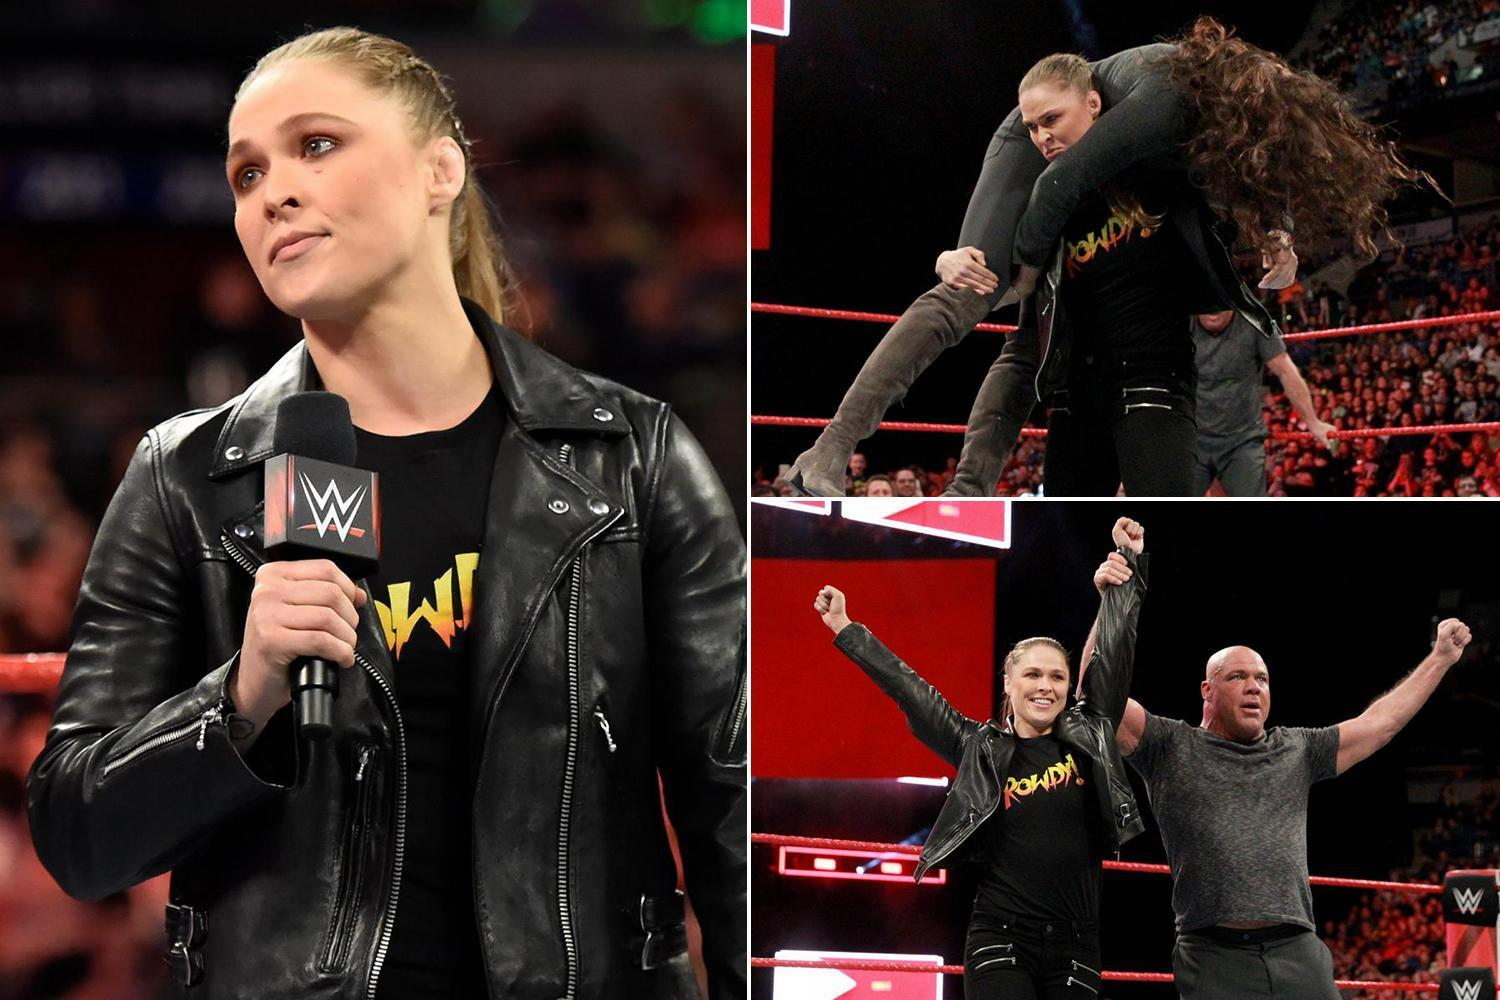 WWE Raw: Ronda Rousey's WrestleMania match confirmed with former UFC star and Kurt Angle to face Triple H and Stephanie McMahon